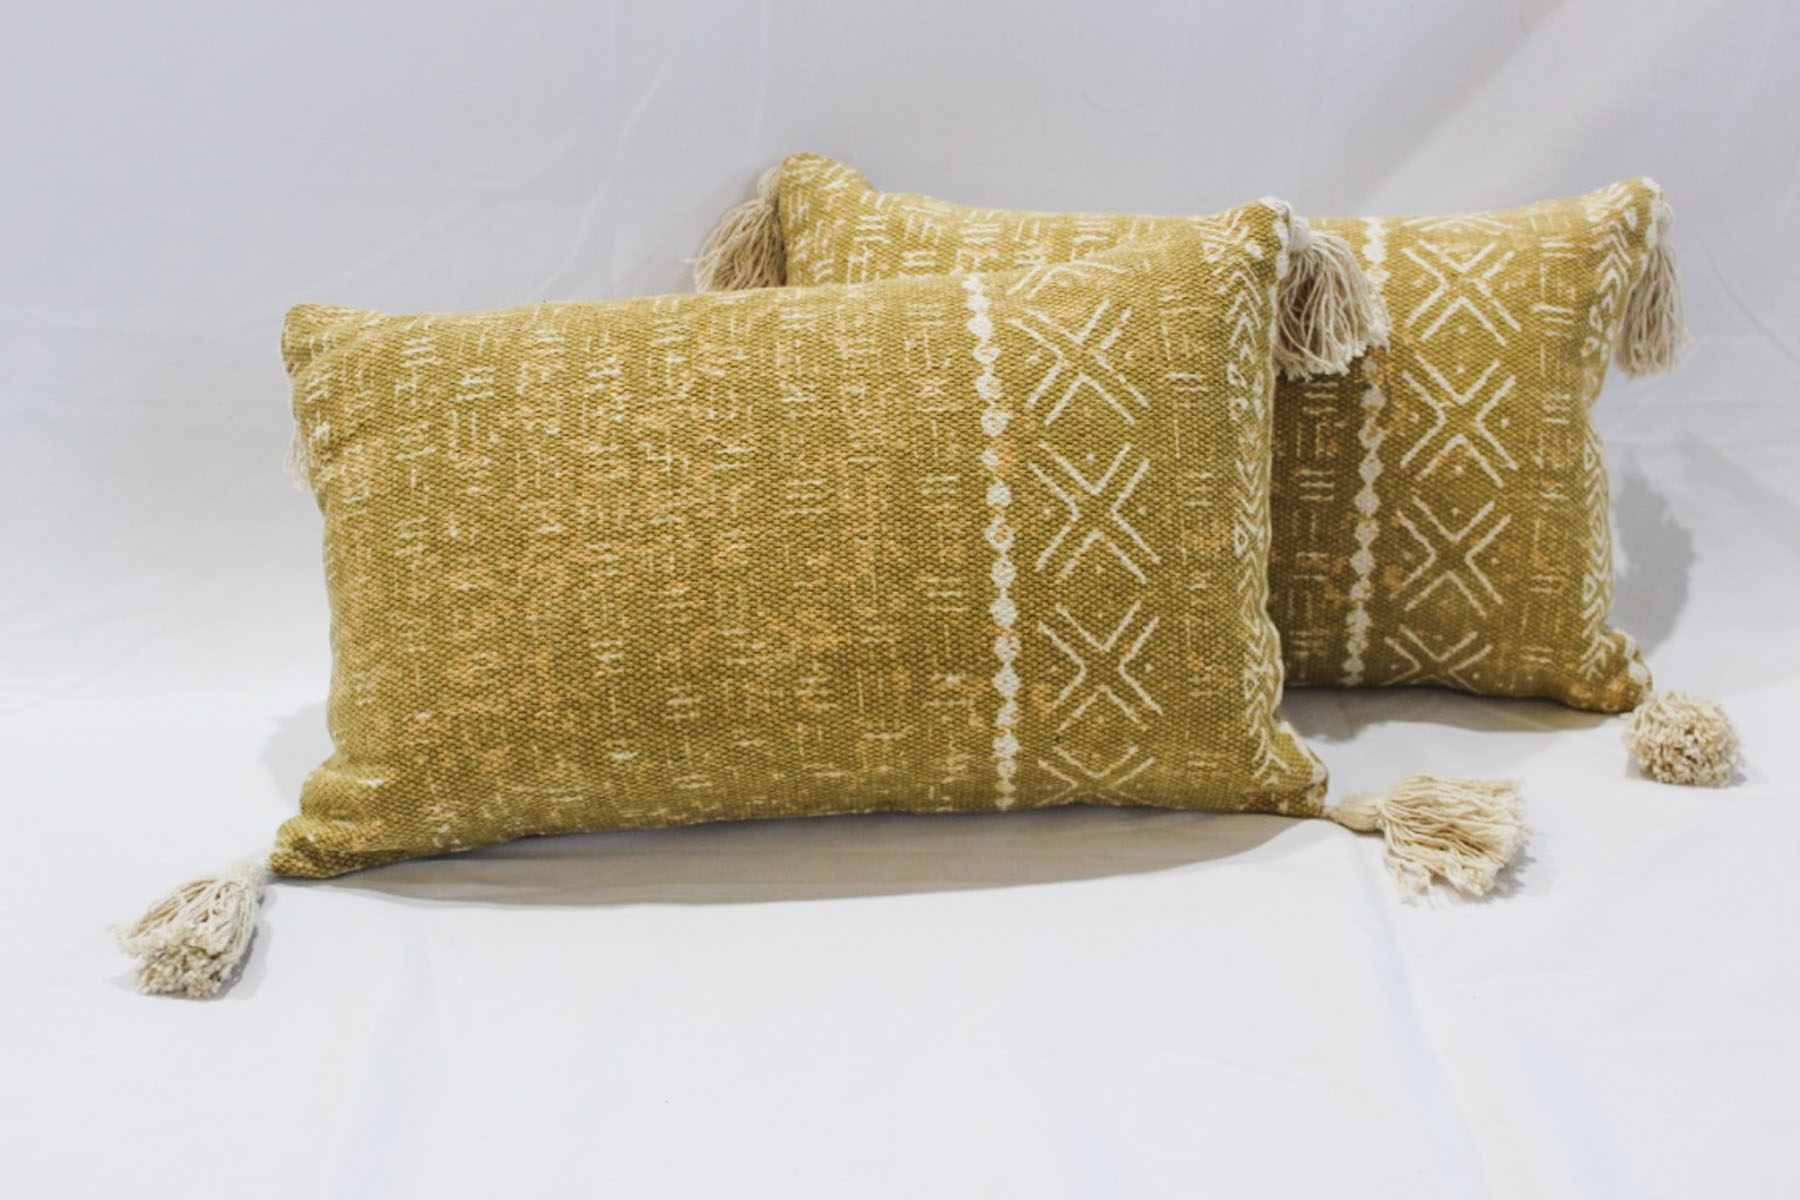 Yellow Mudcloth Pillows - Scavenged Vintage